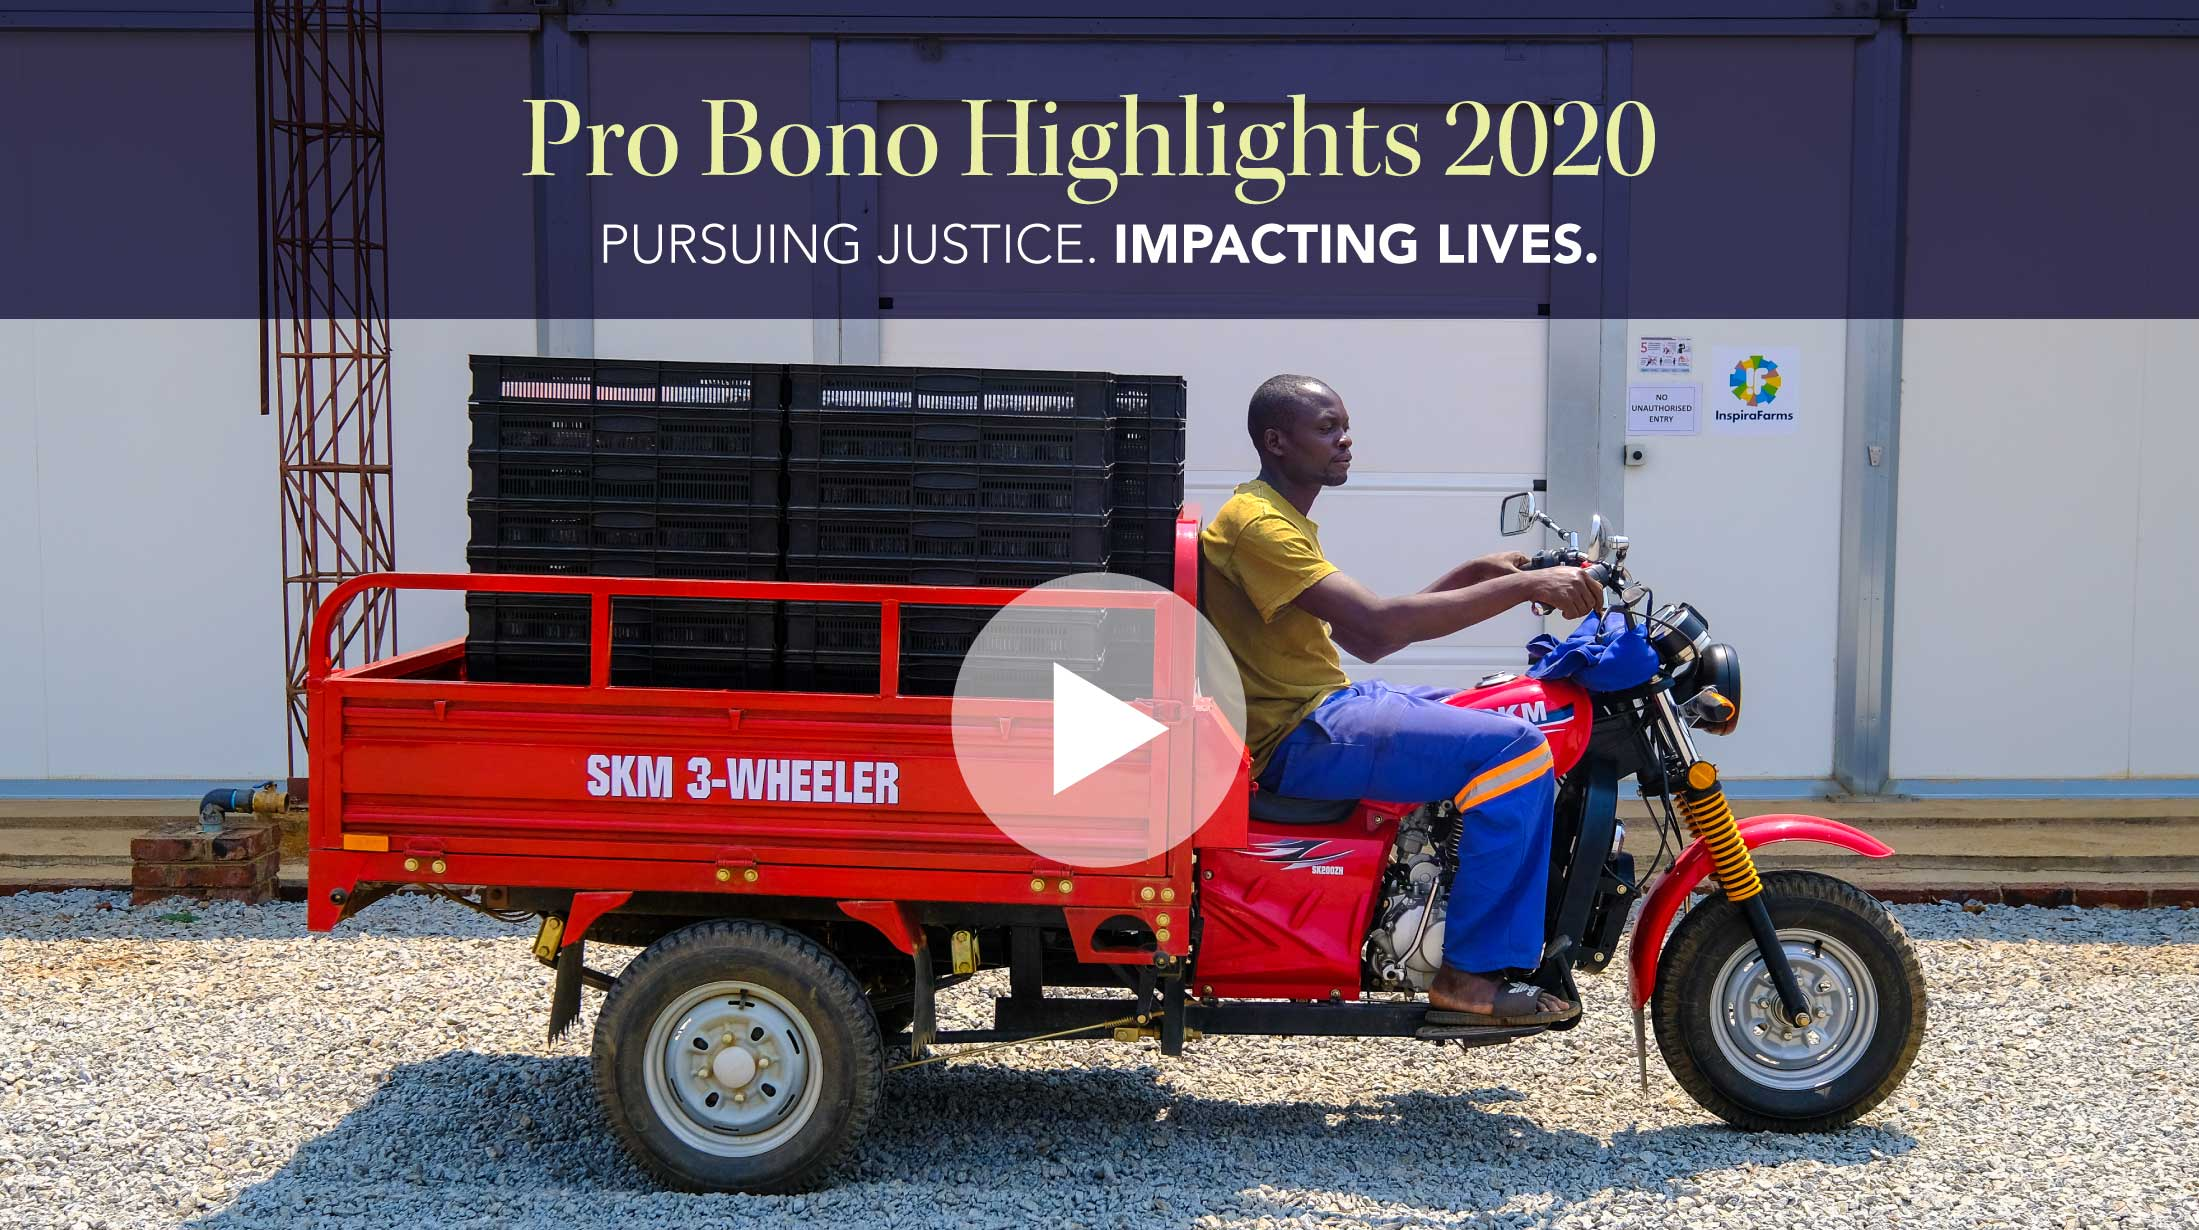 Use this to click play to watch the Pro Bono 2020 Highlights video.